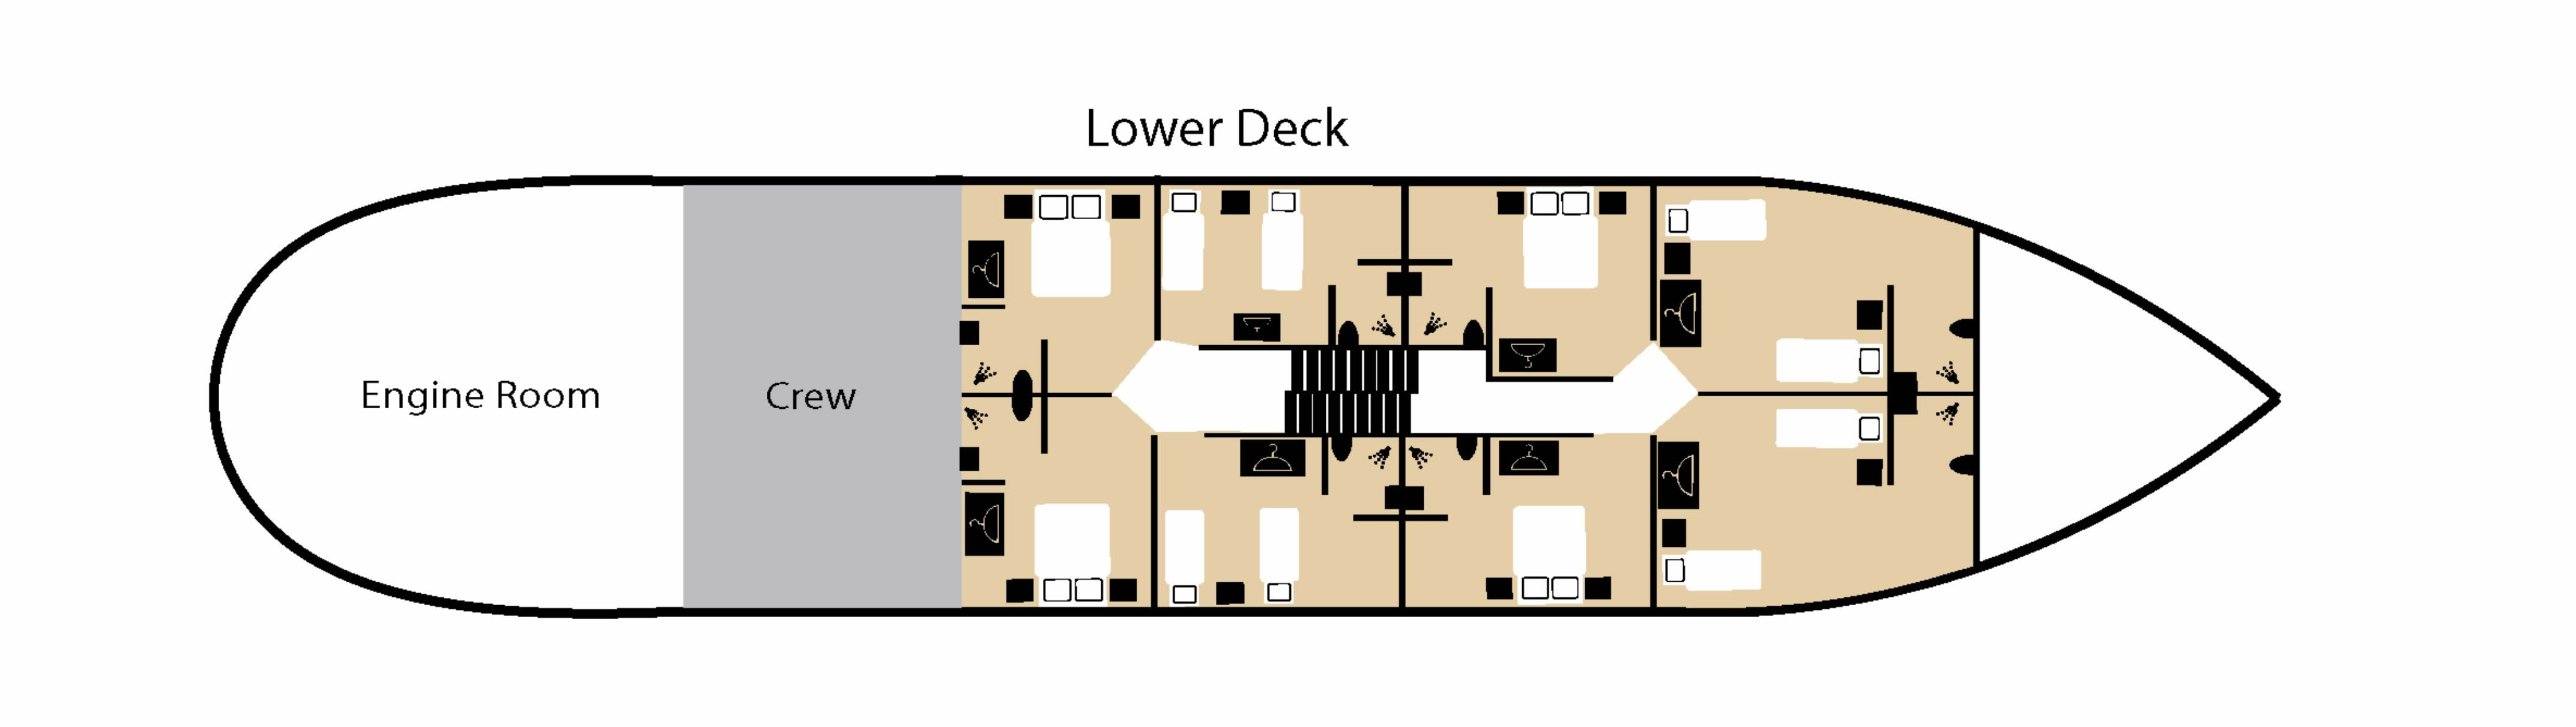 Lower Deck